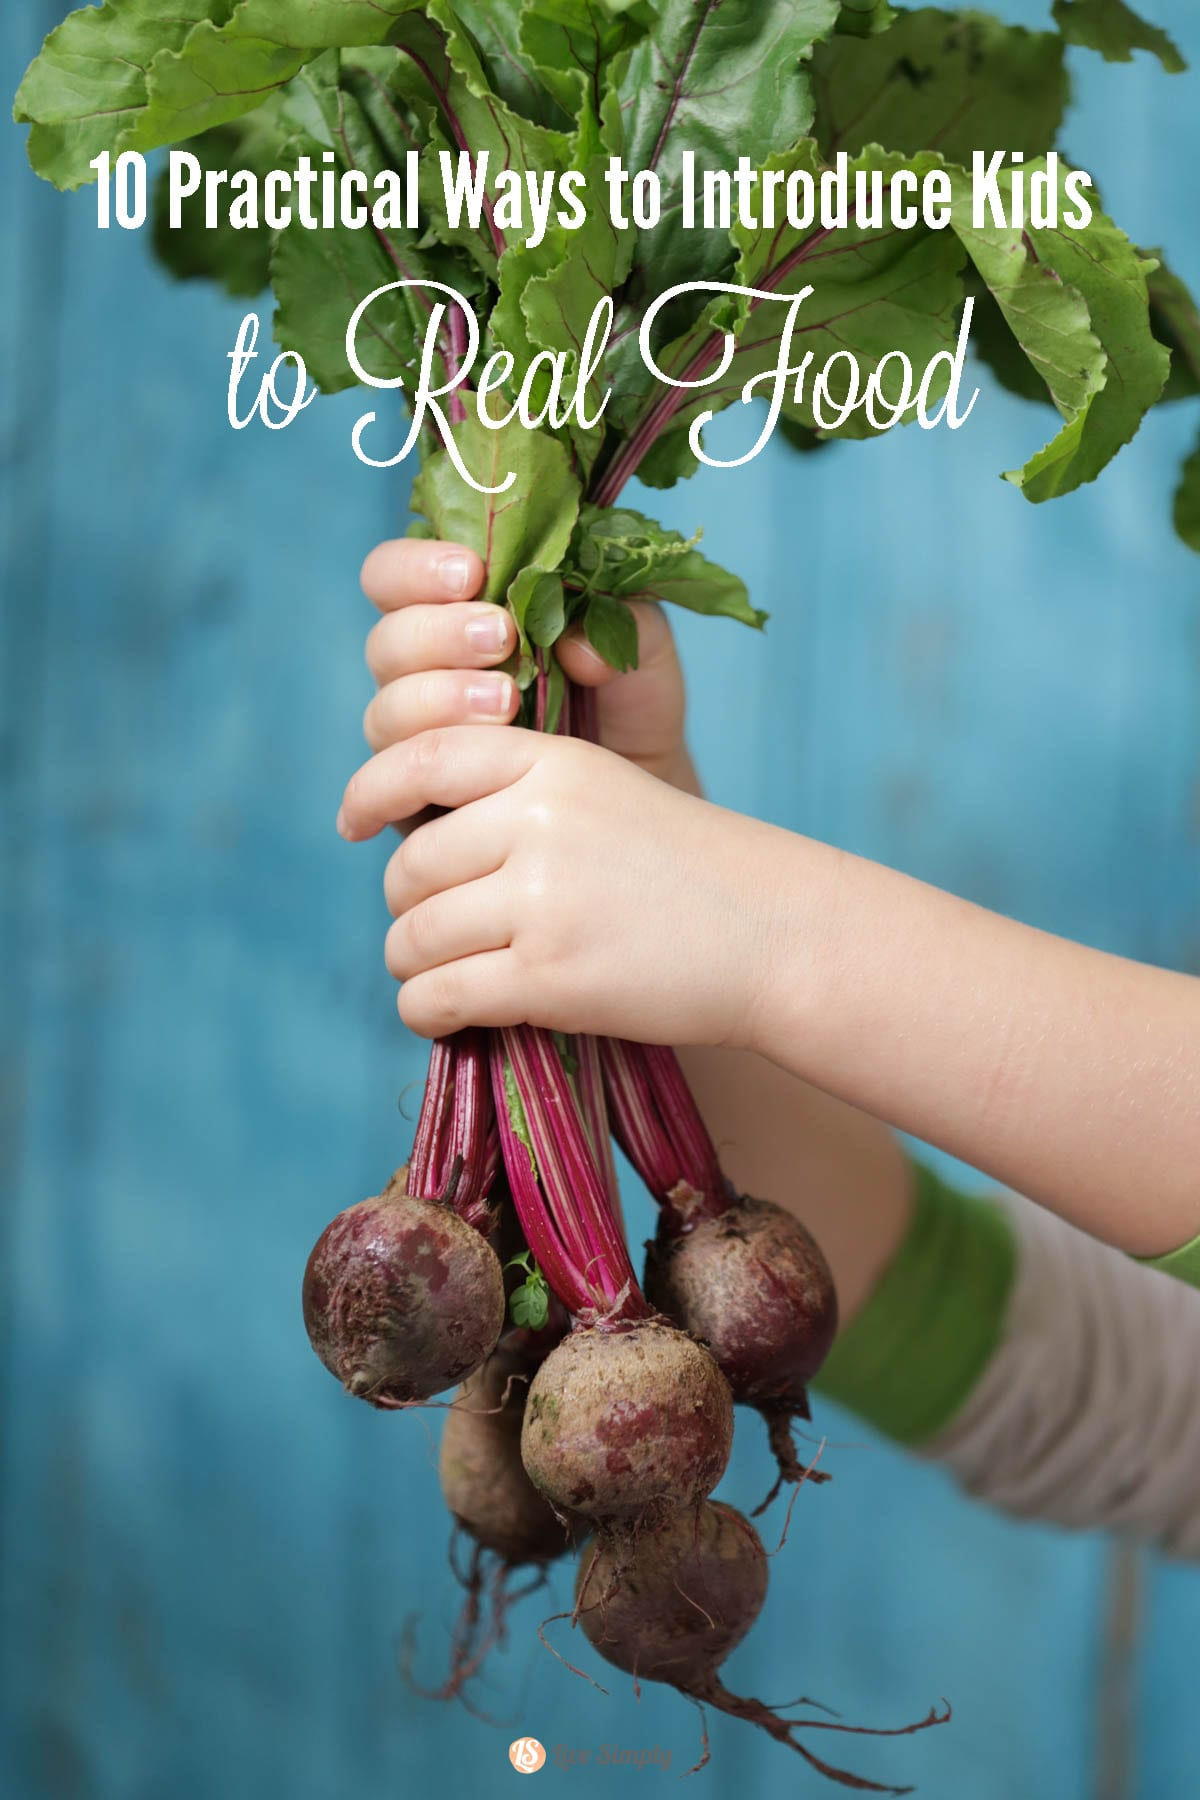 10 Practical Ways to Introduce Kids to Real Food